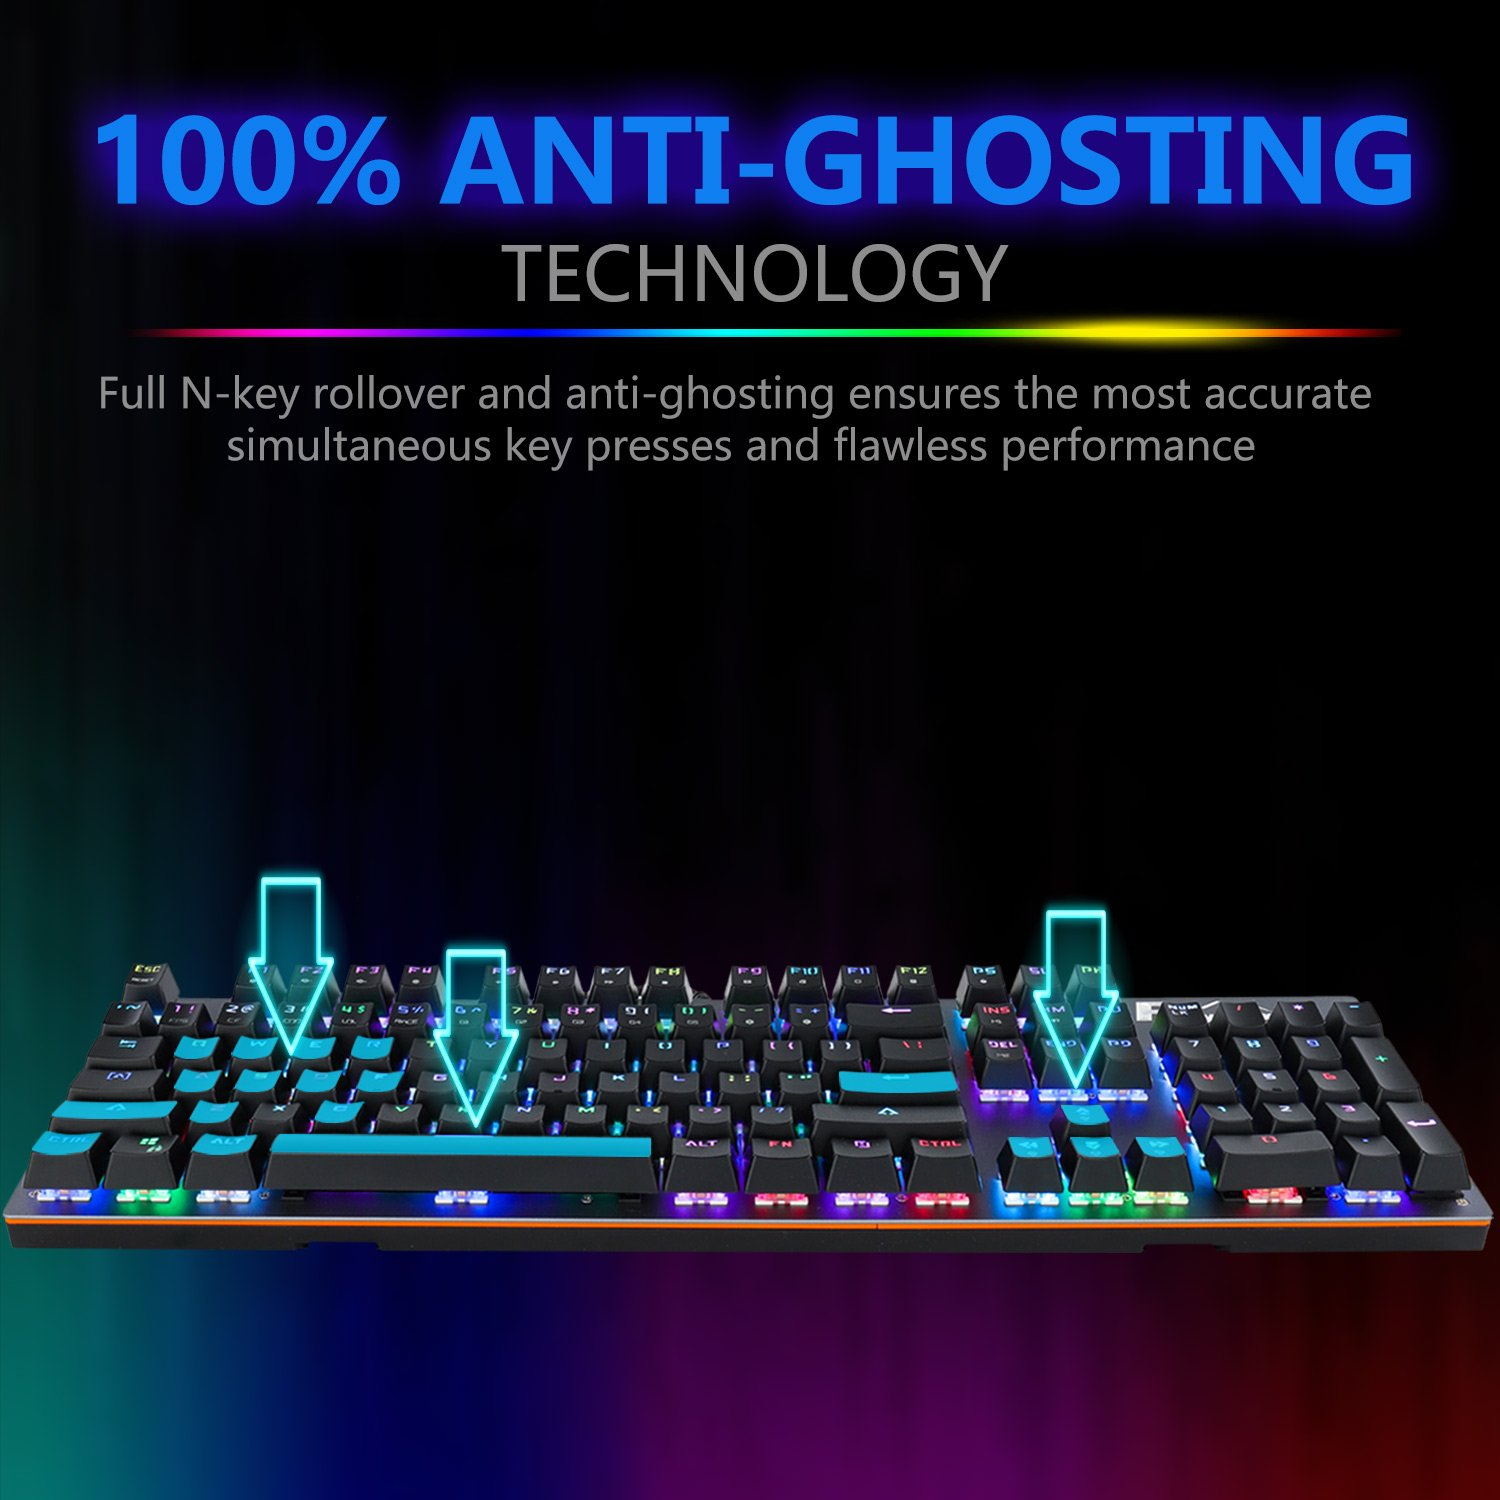 Raydem RGB Mechanical Keyboard with Blue Switches, 16.8 Million RGB Backlit Mechanical Gaming Keyboard with 14 LED Backlit Modes 104-key Anti-Ghost Aluminum Plate, Non-Fading UV Coating for PC & Mac by Raydem (Image #4)